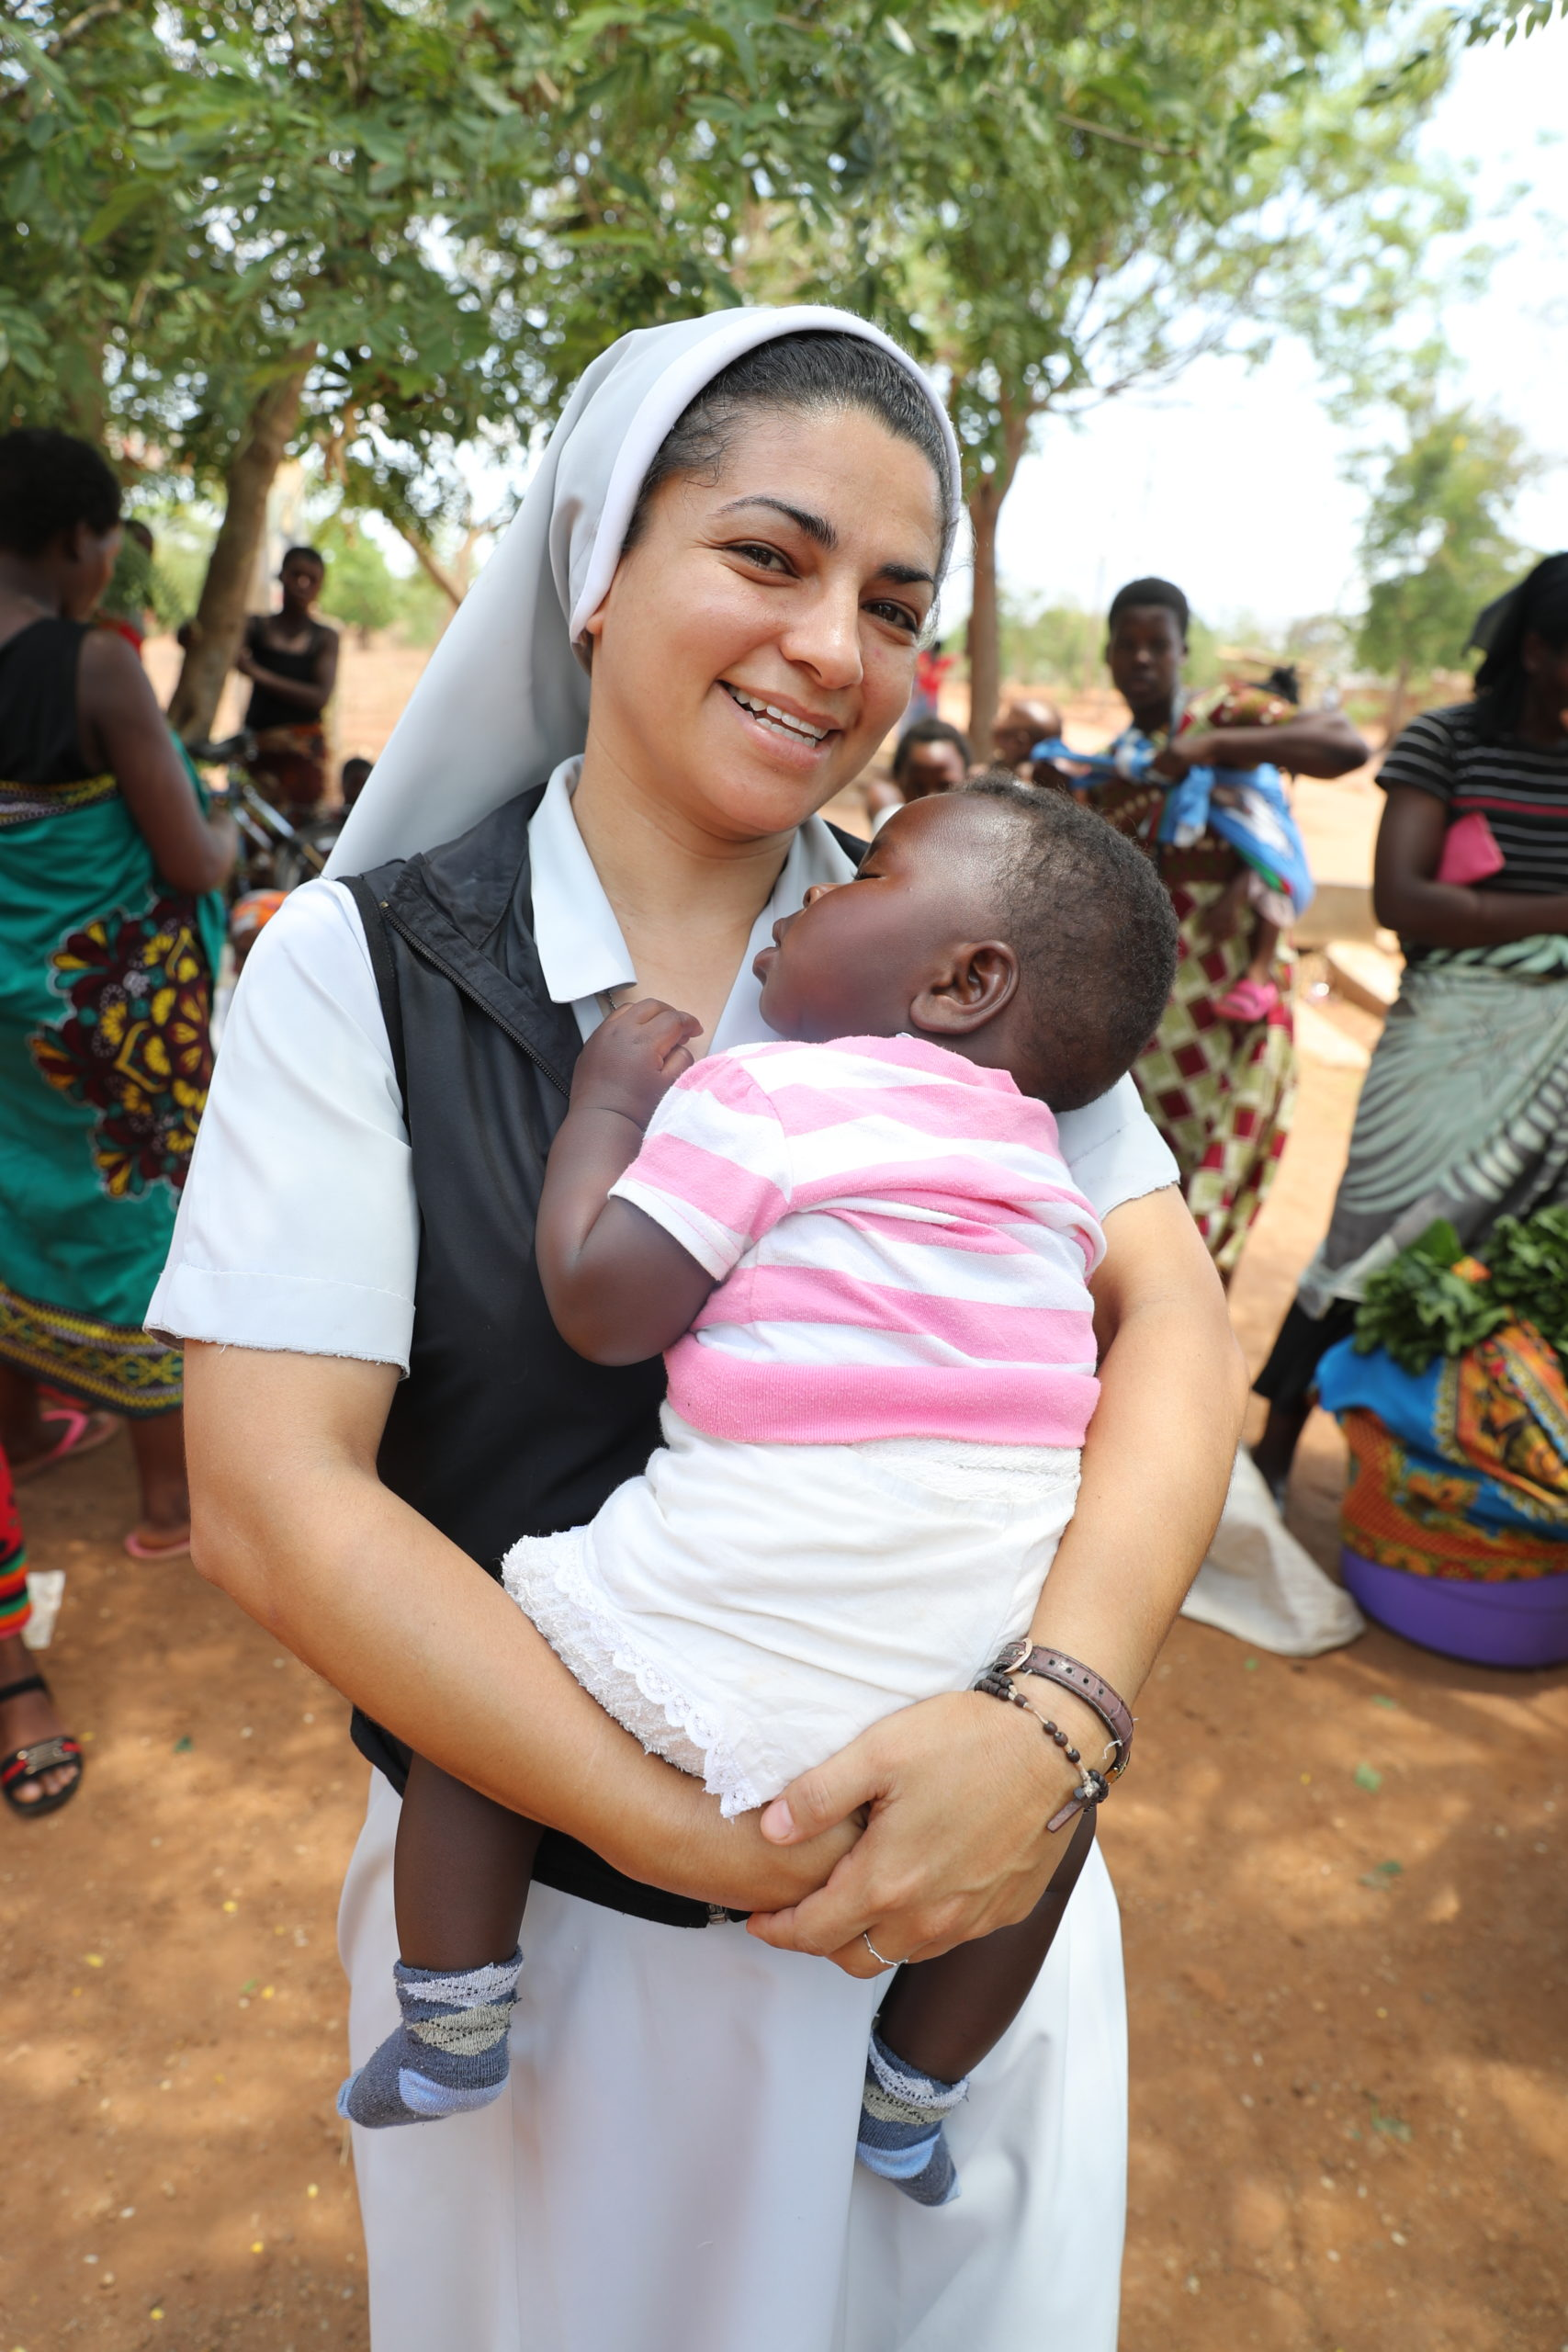 Sister Nilcéia is a Brazilian missionary working in a health clinic in a remote area of Malawi